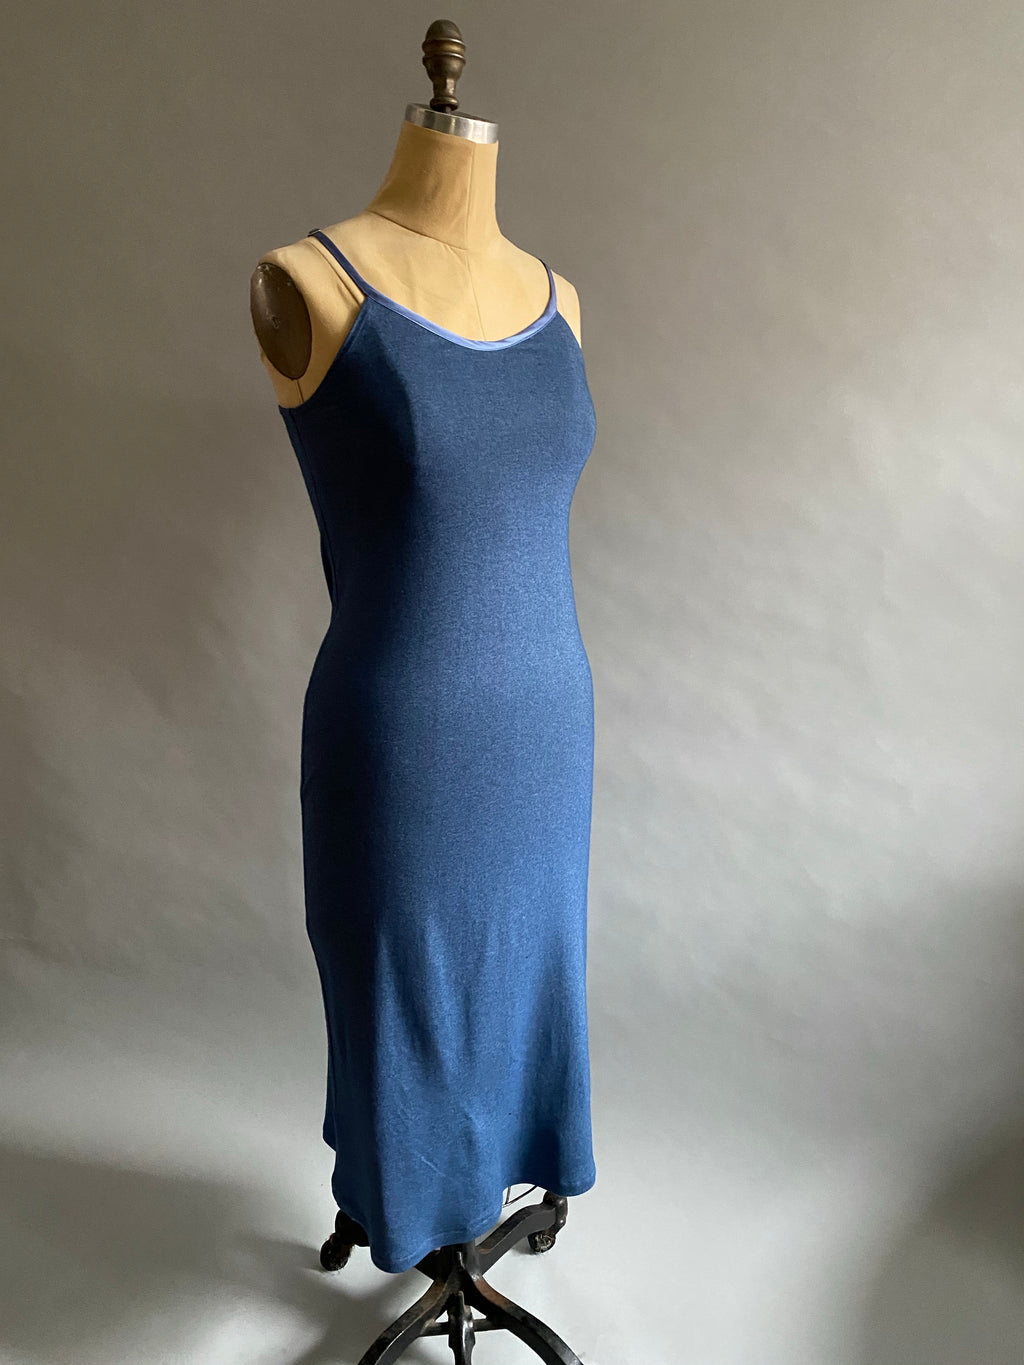 Denim Blue Italian Merino Wool Knit Nightie